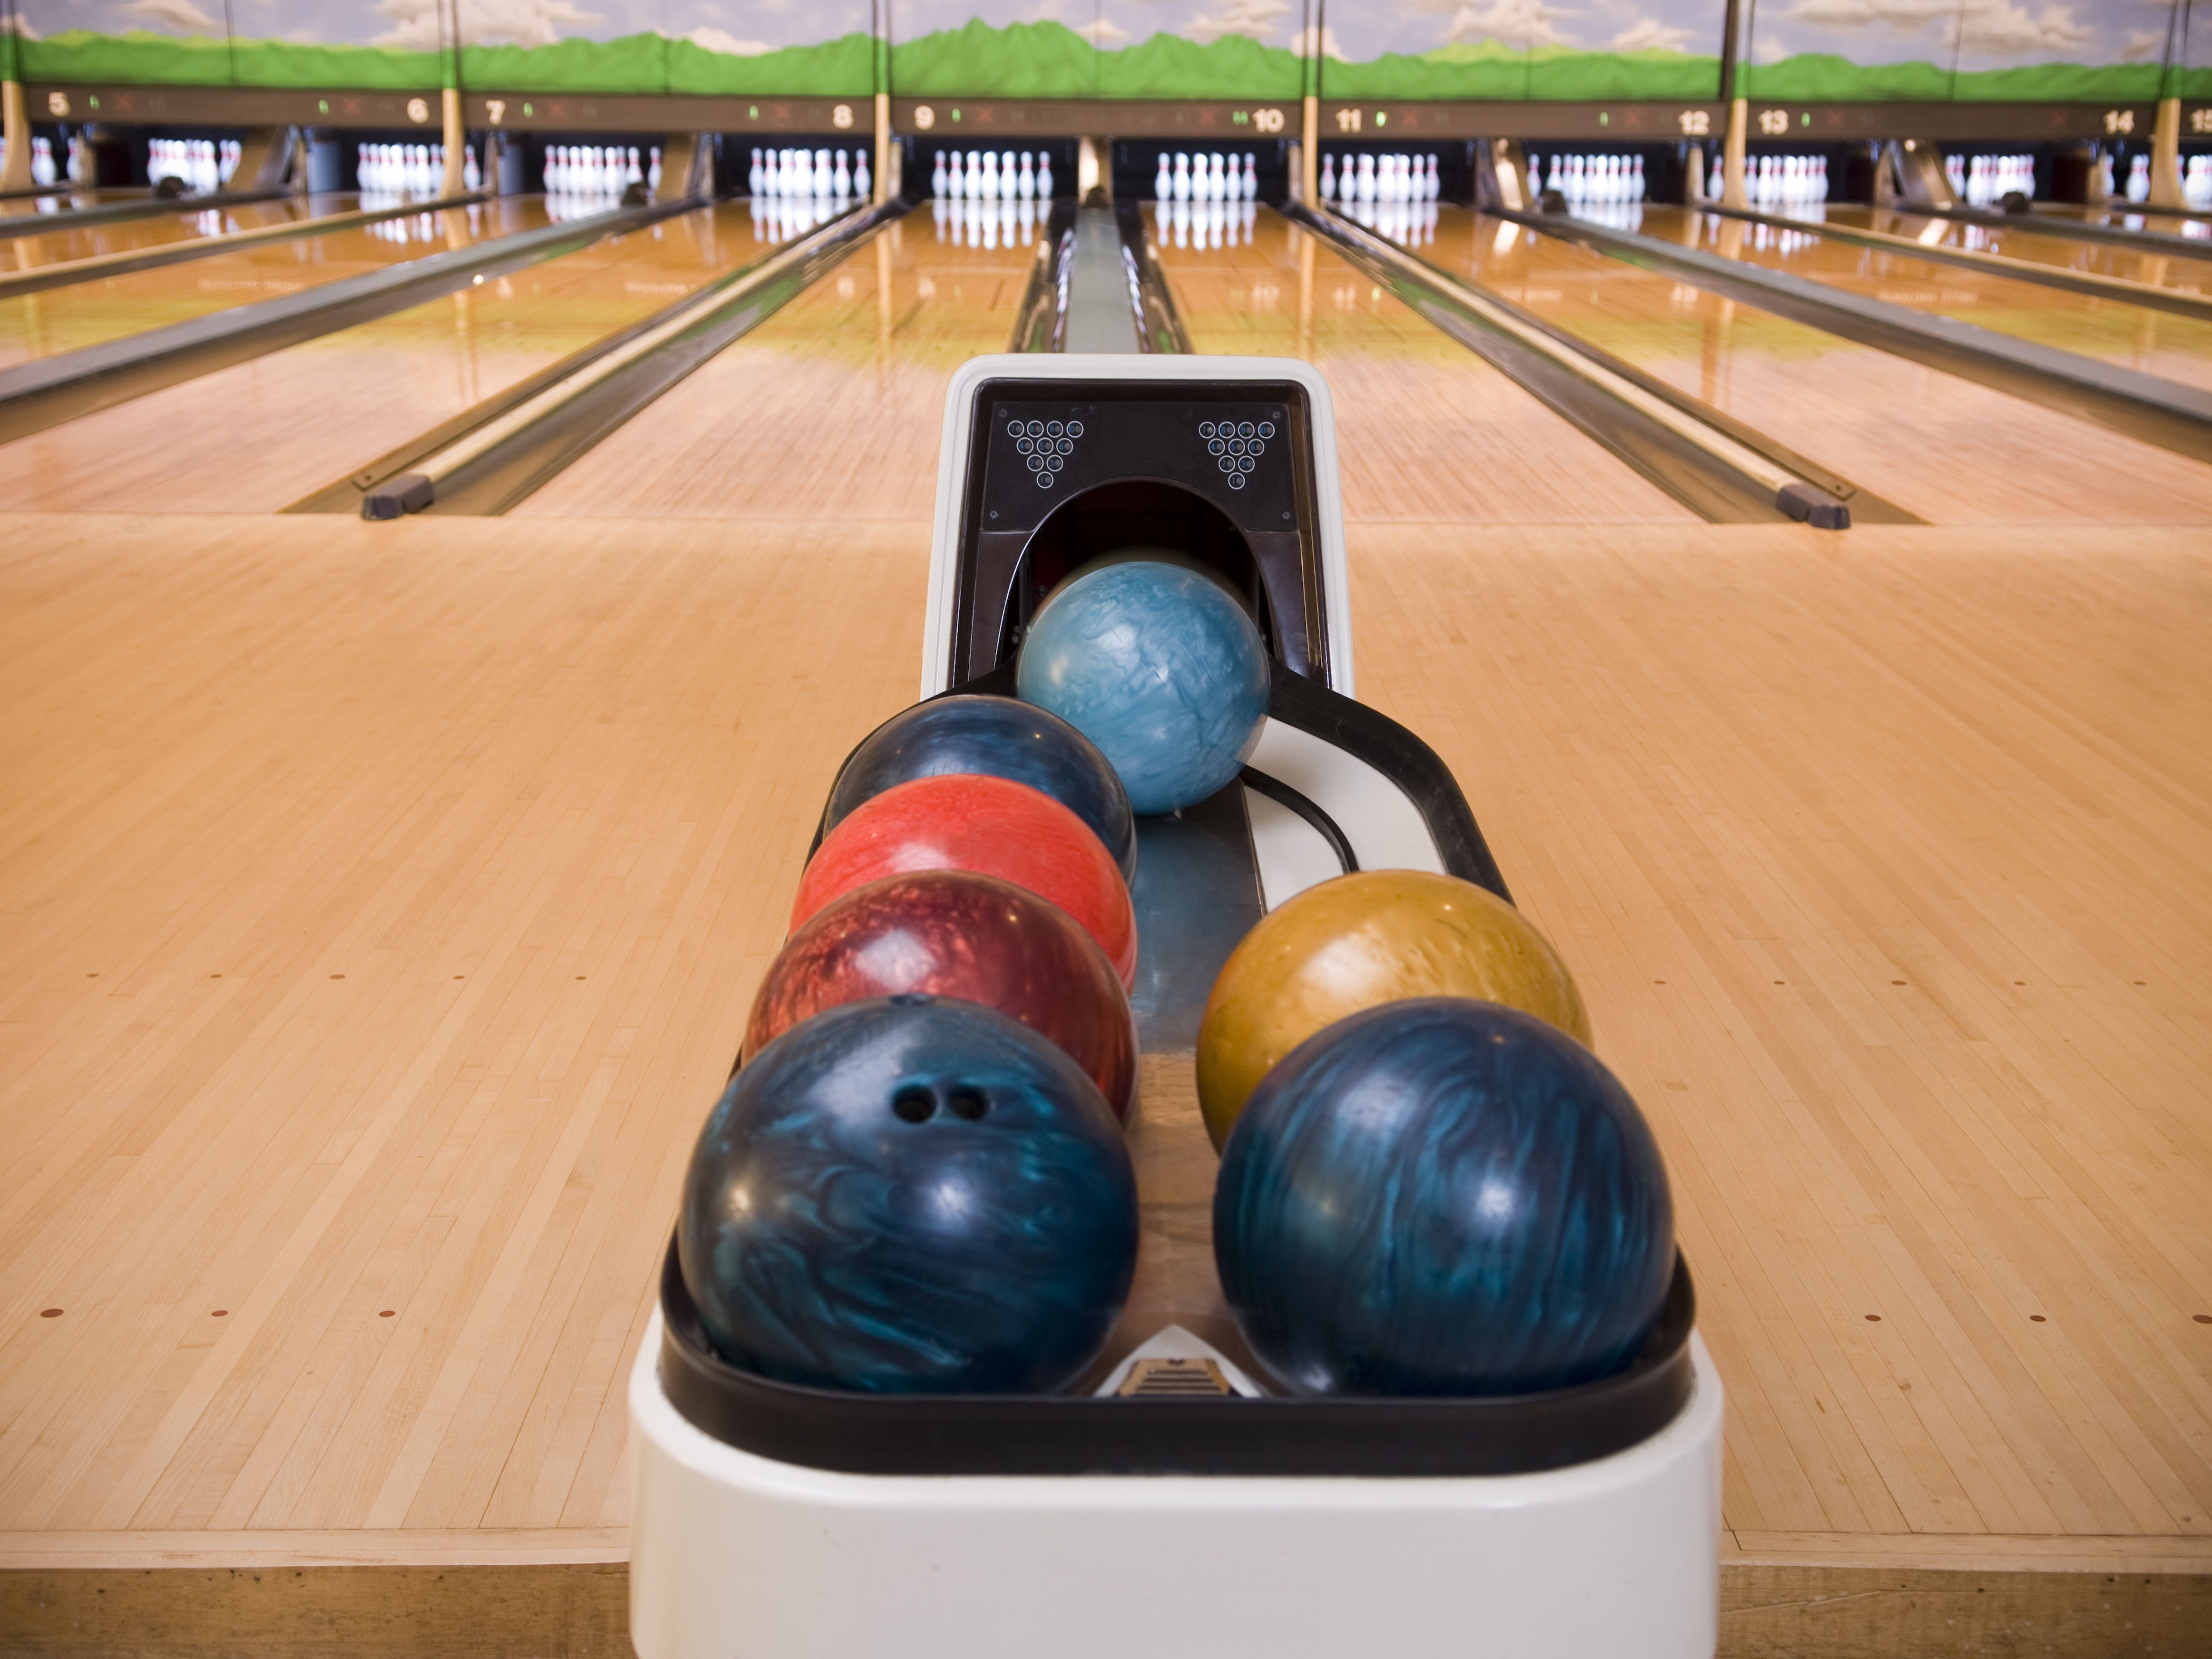 Why Bowling Is A Good Team Building Exercise